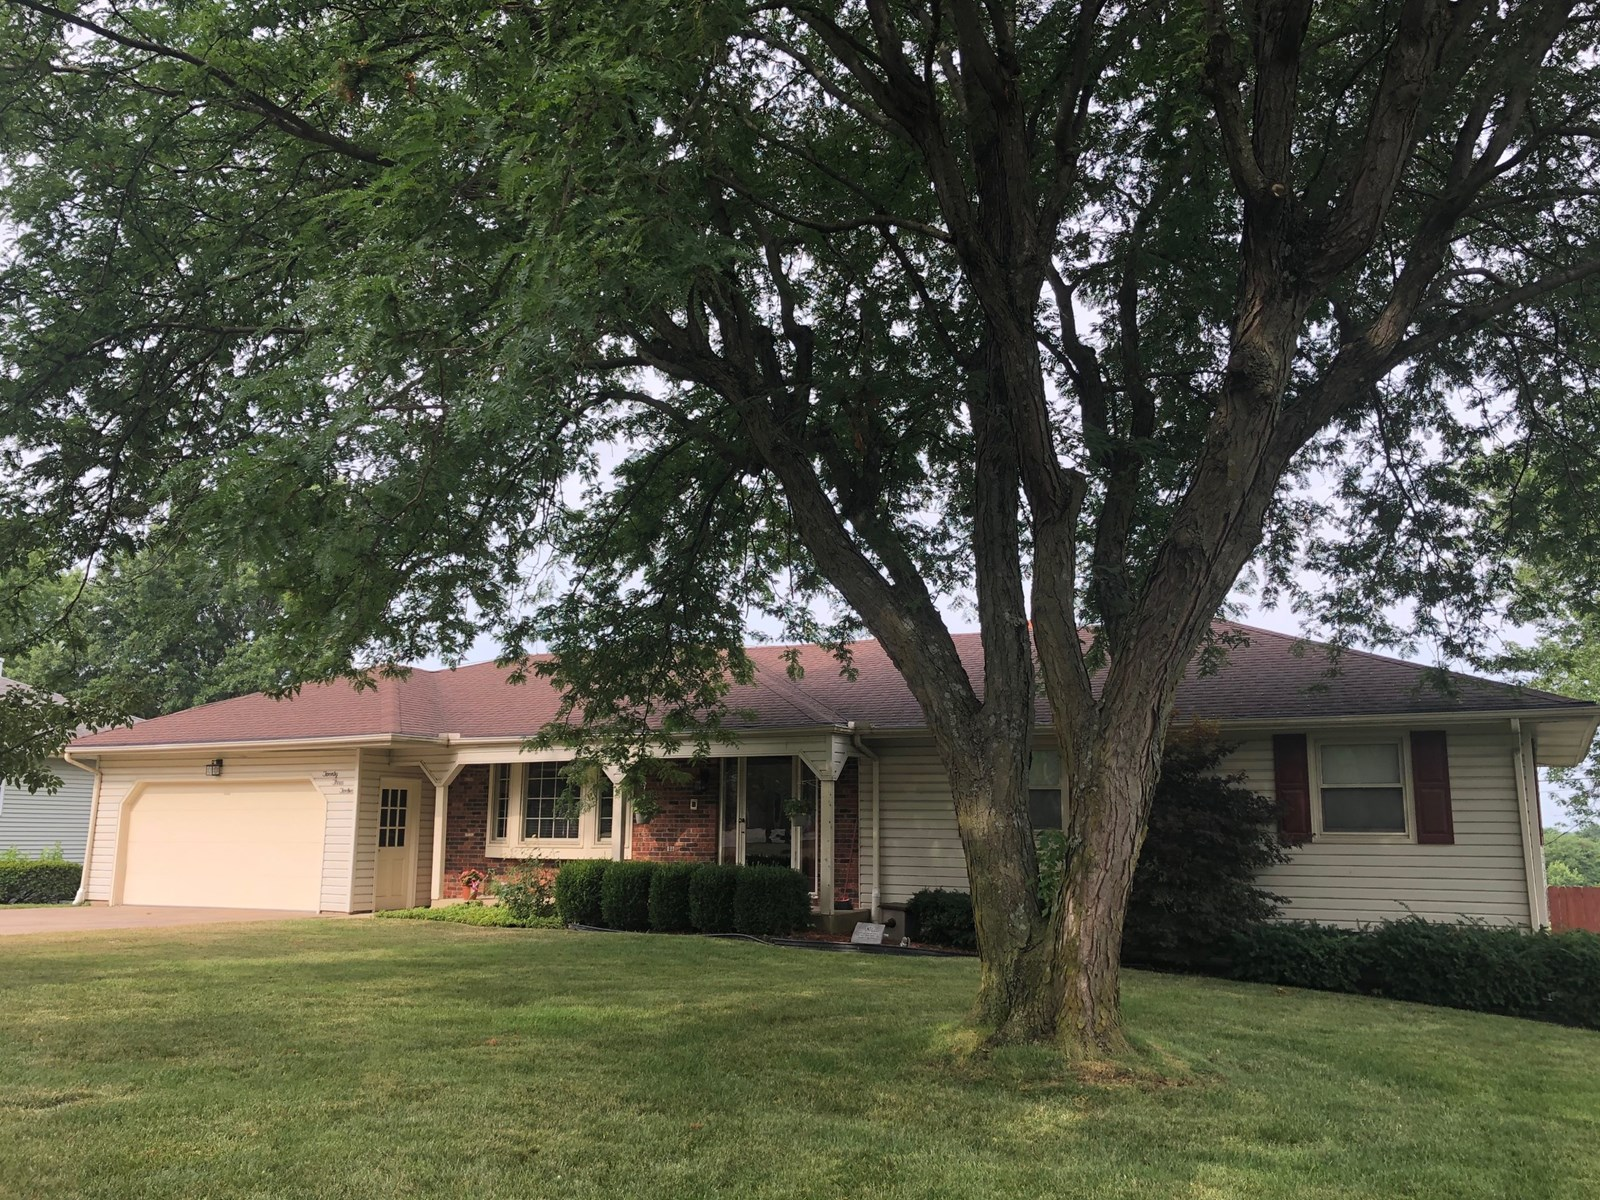 For Sale Ranch Home Near Park & Golf Course